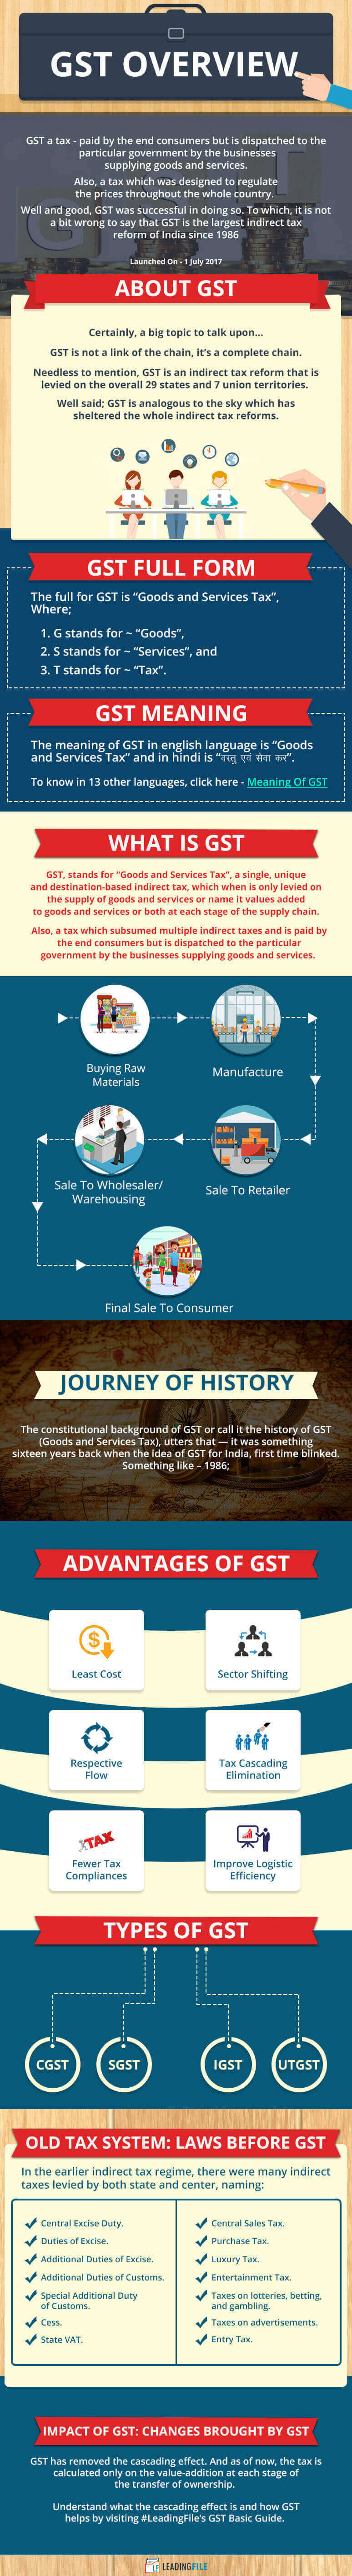 GST Information Explained -- All About GST